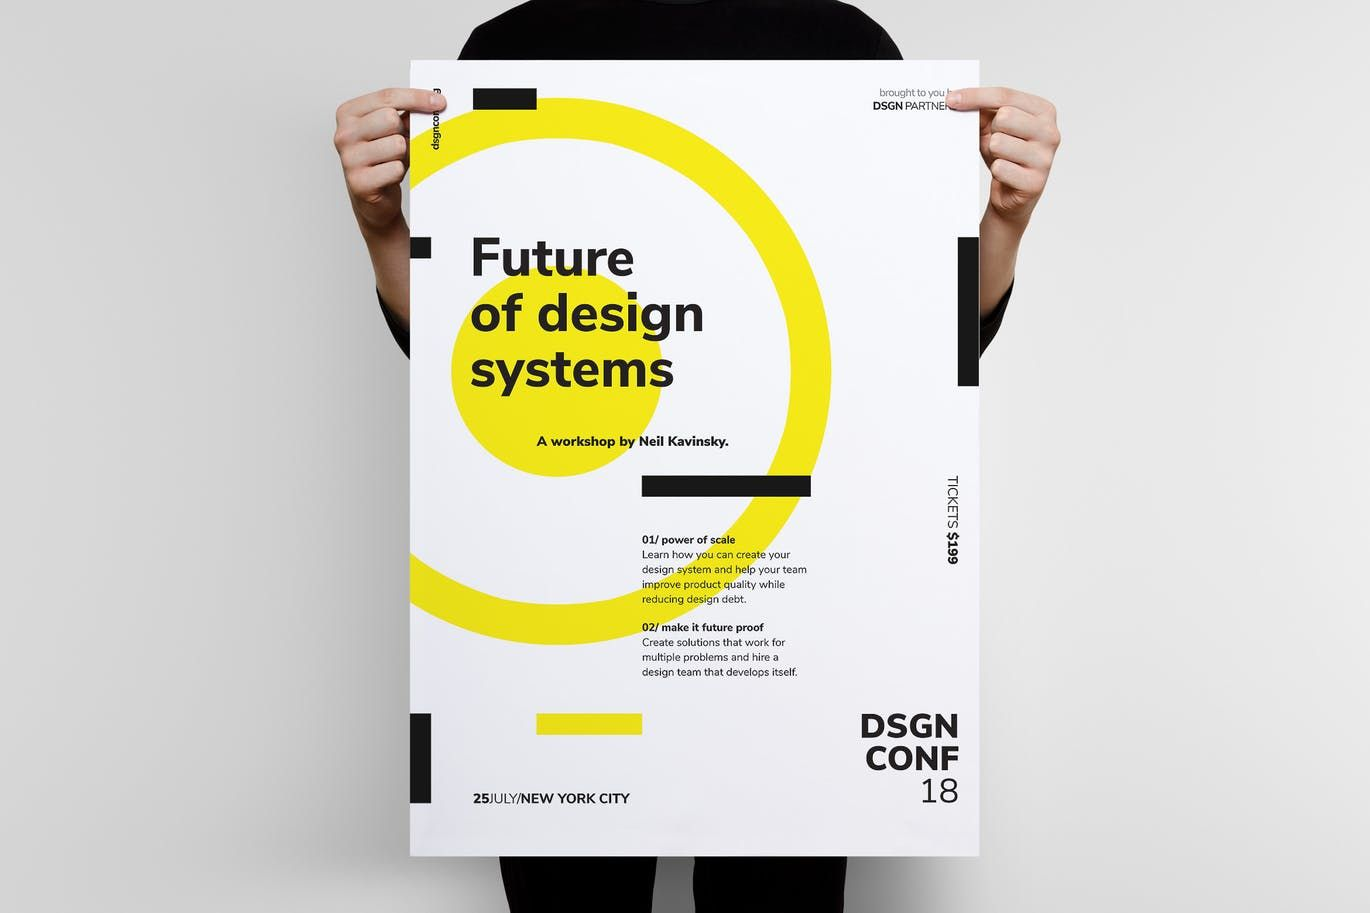 Dsgn Series 3 Poster Flyer Template By Codetoform On Envato Elements Poster Design Layout Flyer Template Fashion Poster Design